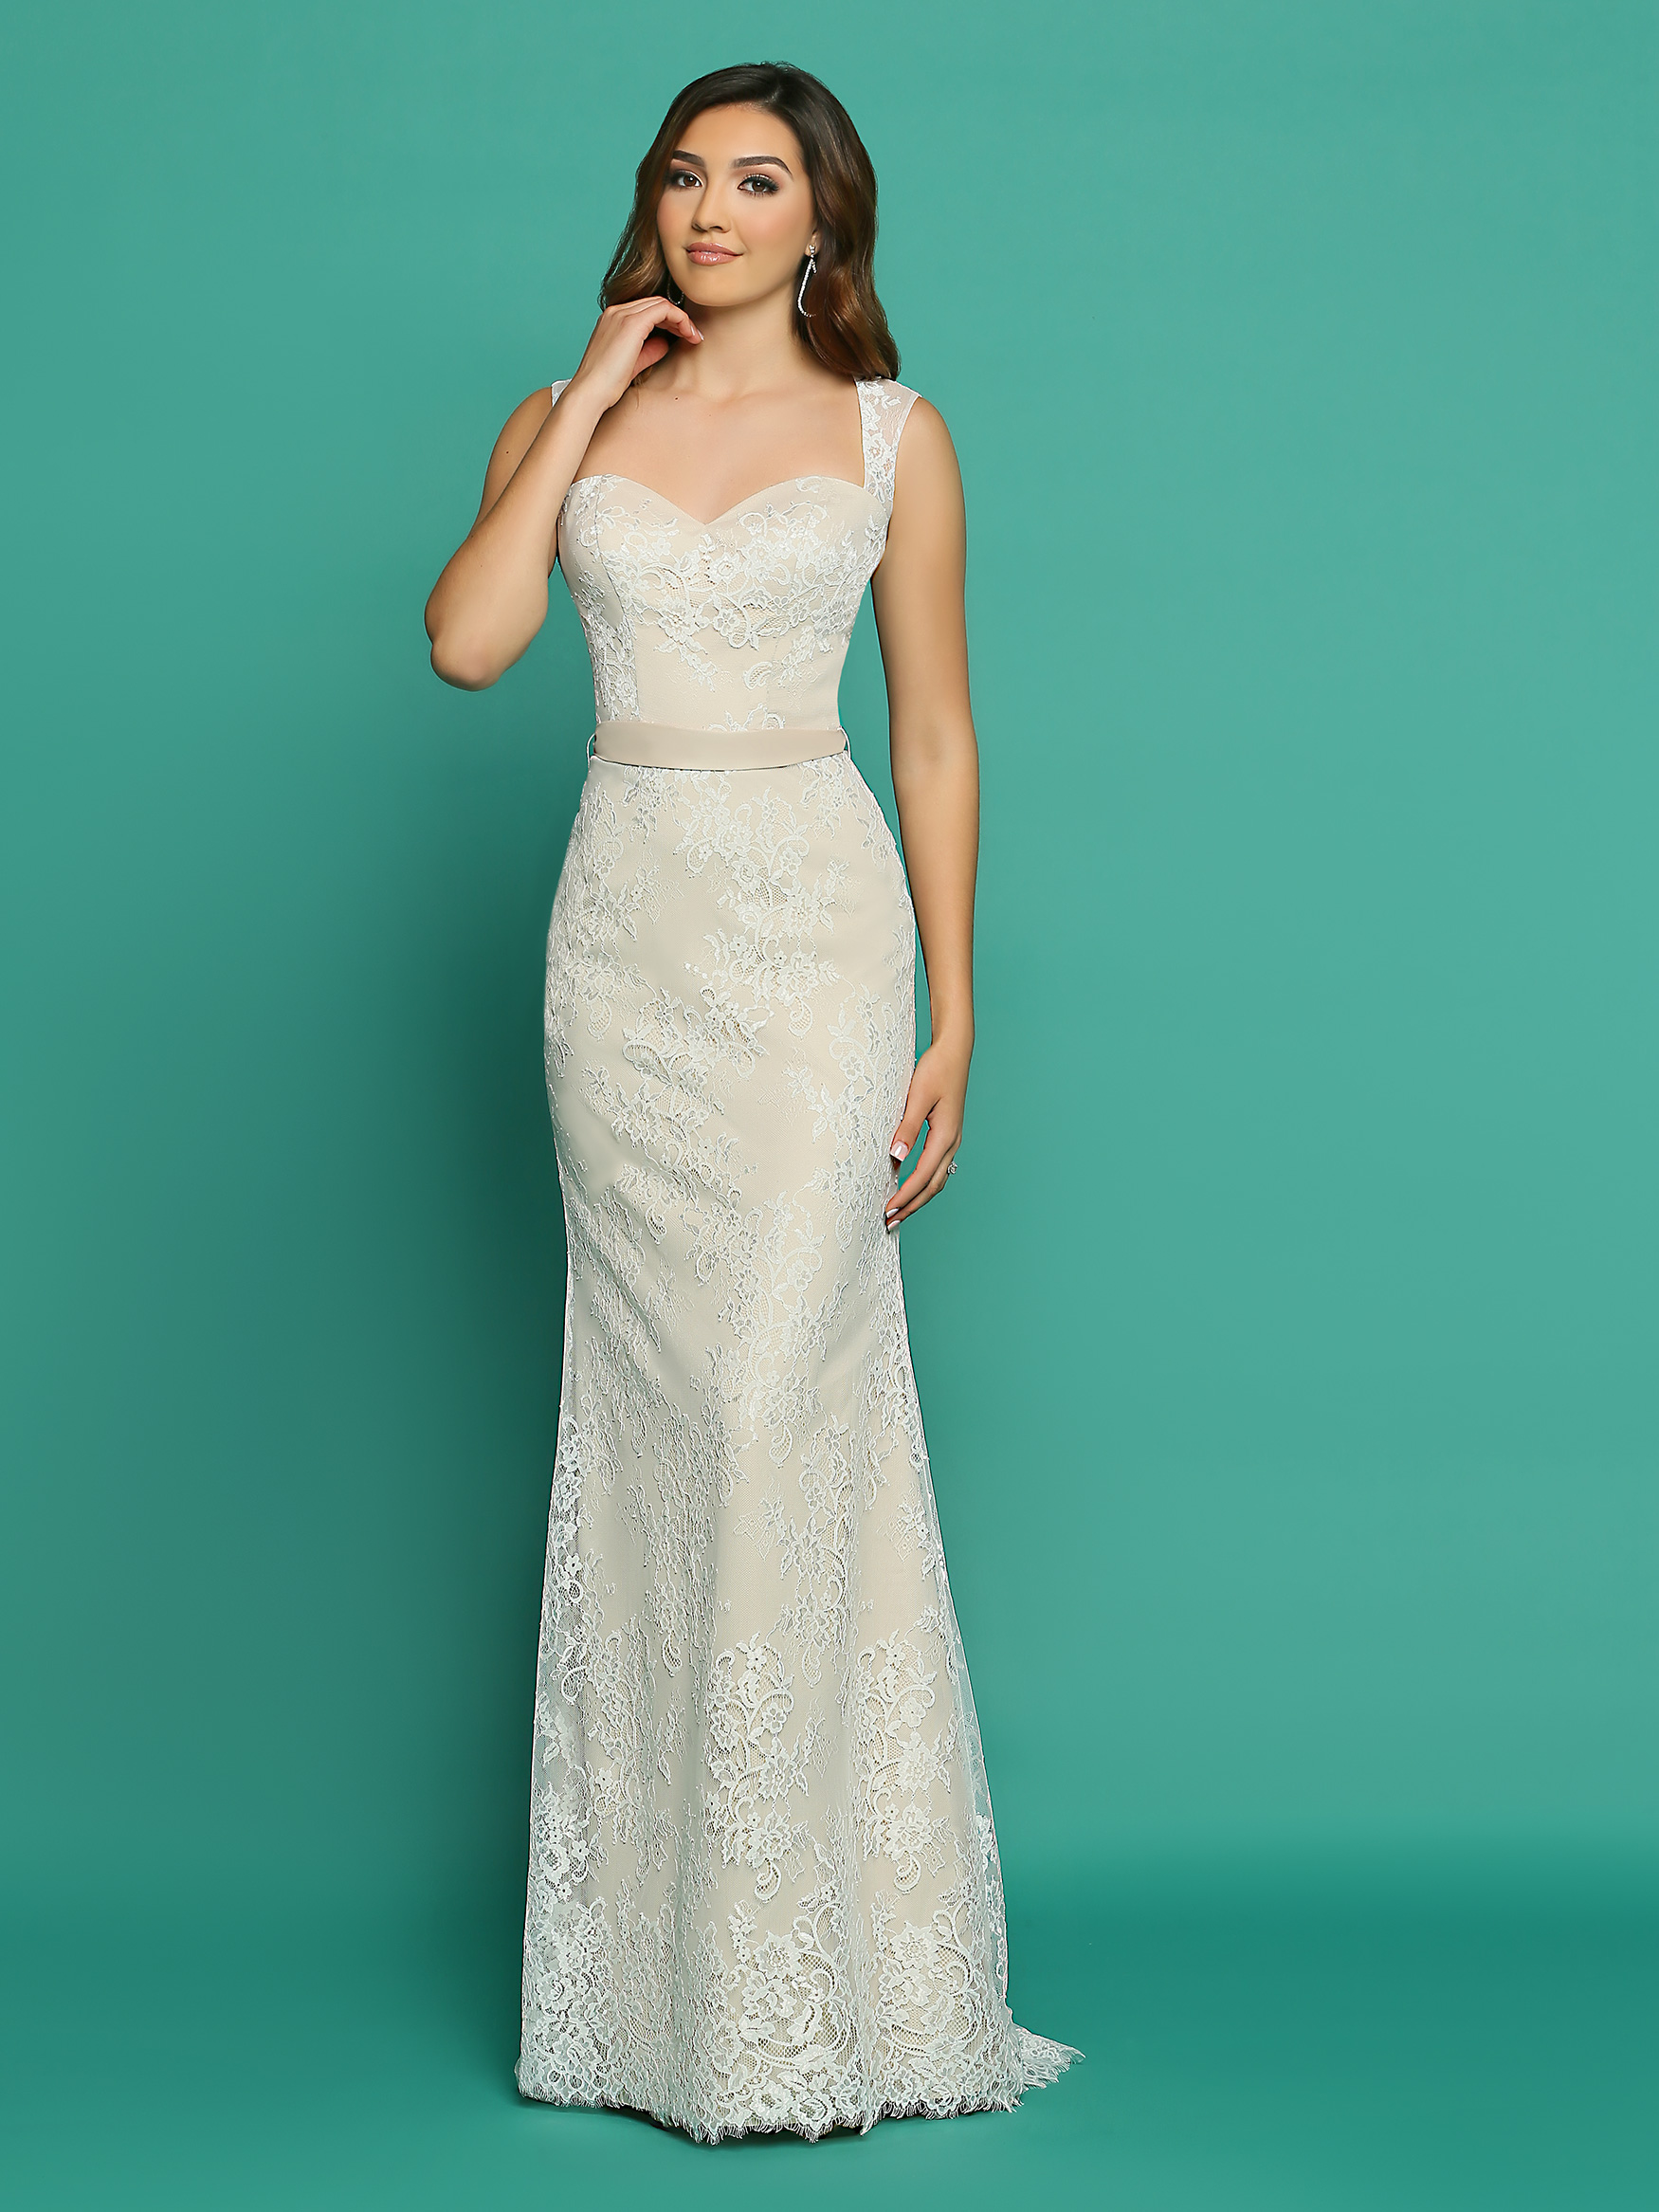 casual wedding dresses image showing front view of style #f7056 ... zjbonfq